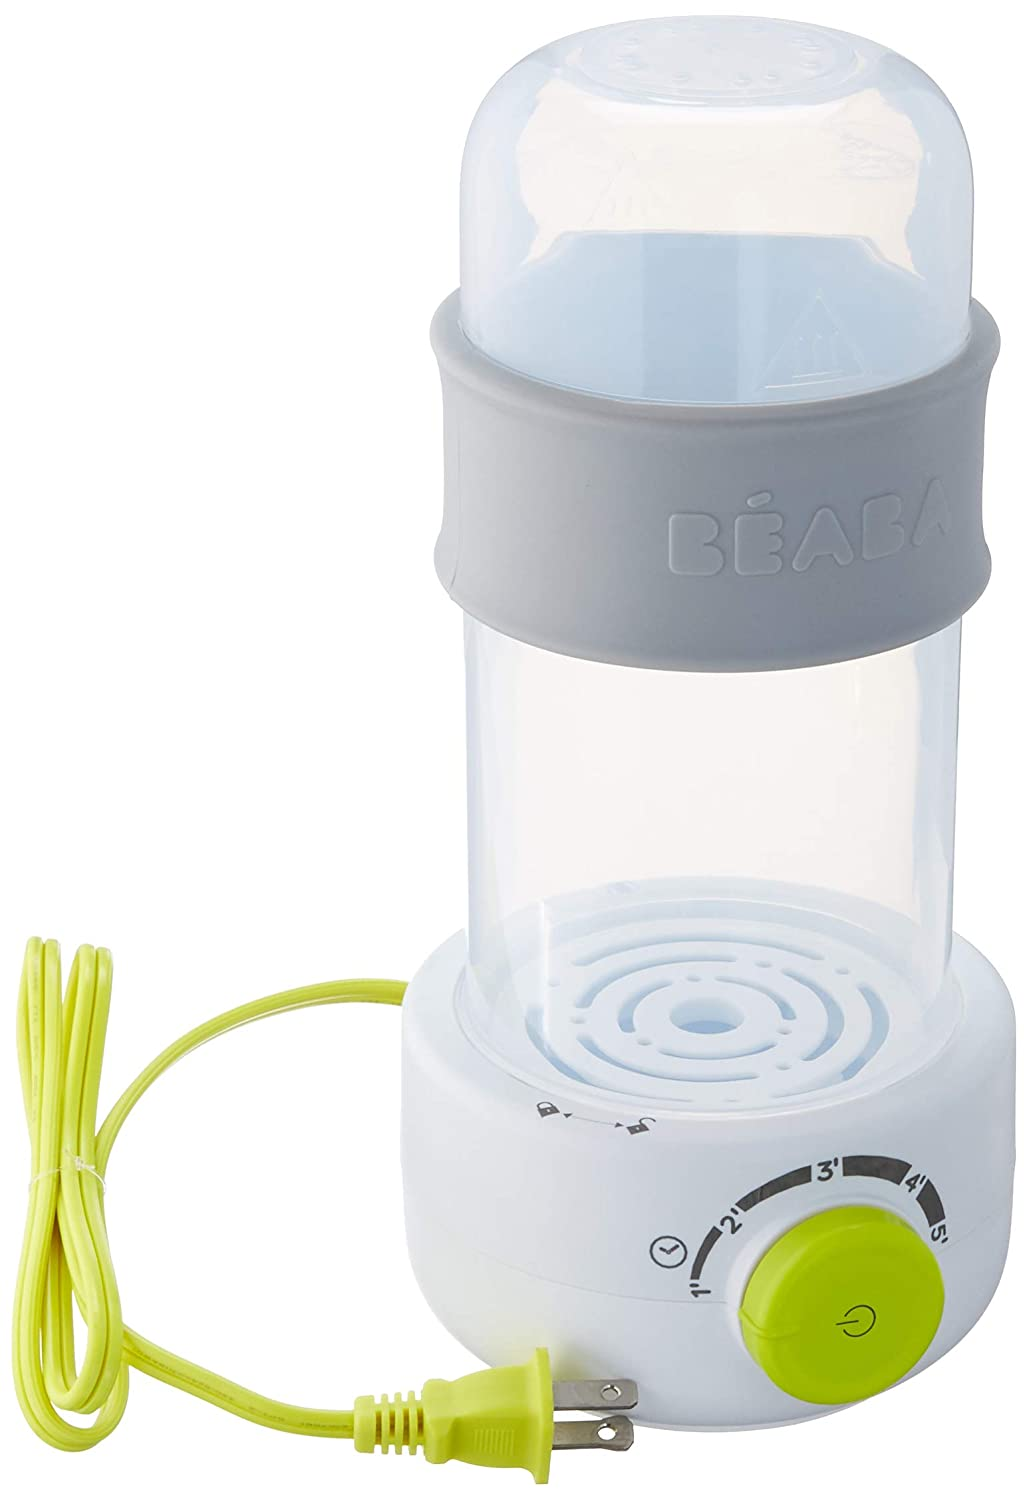 BEABA Quick Baby Bottle Warmer, Steam Sterilizer, Baby Food Heater (3-in-1) Warm Milk in Just Two Minutes, BPA and Lead Free, Simple Temperature Control, Fits All Bottle Sizes - Even Wide Neck, Neon 911641